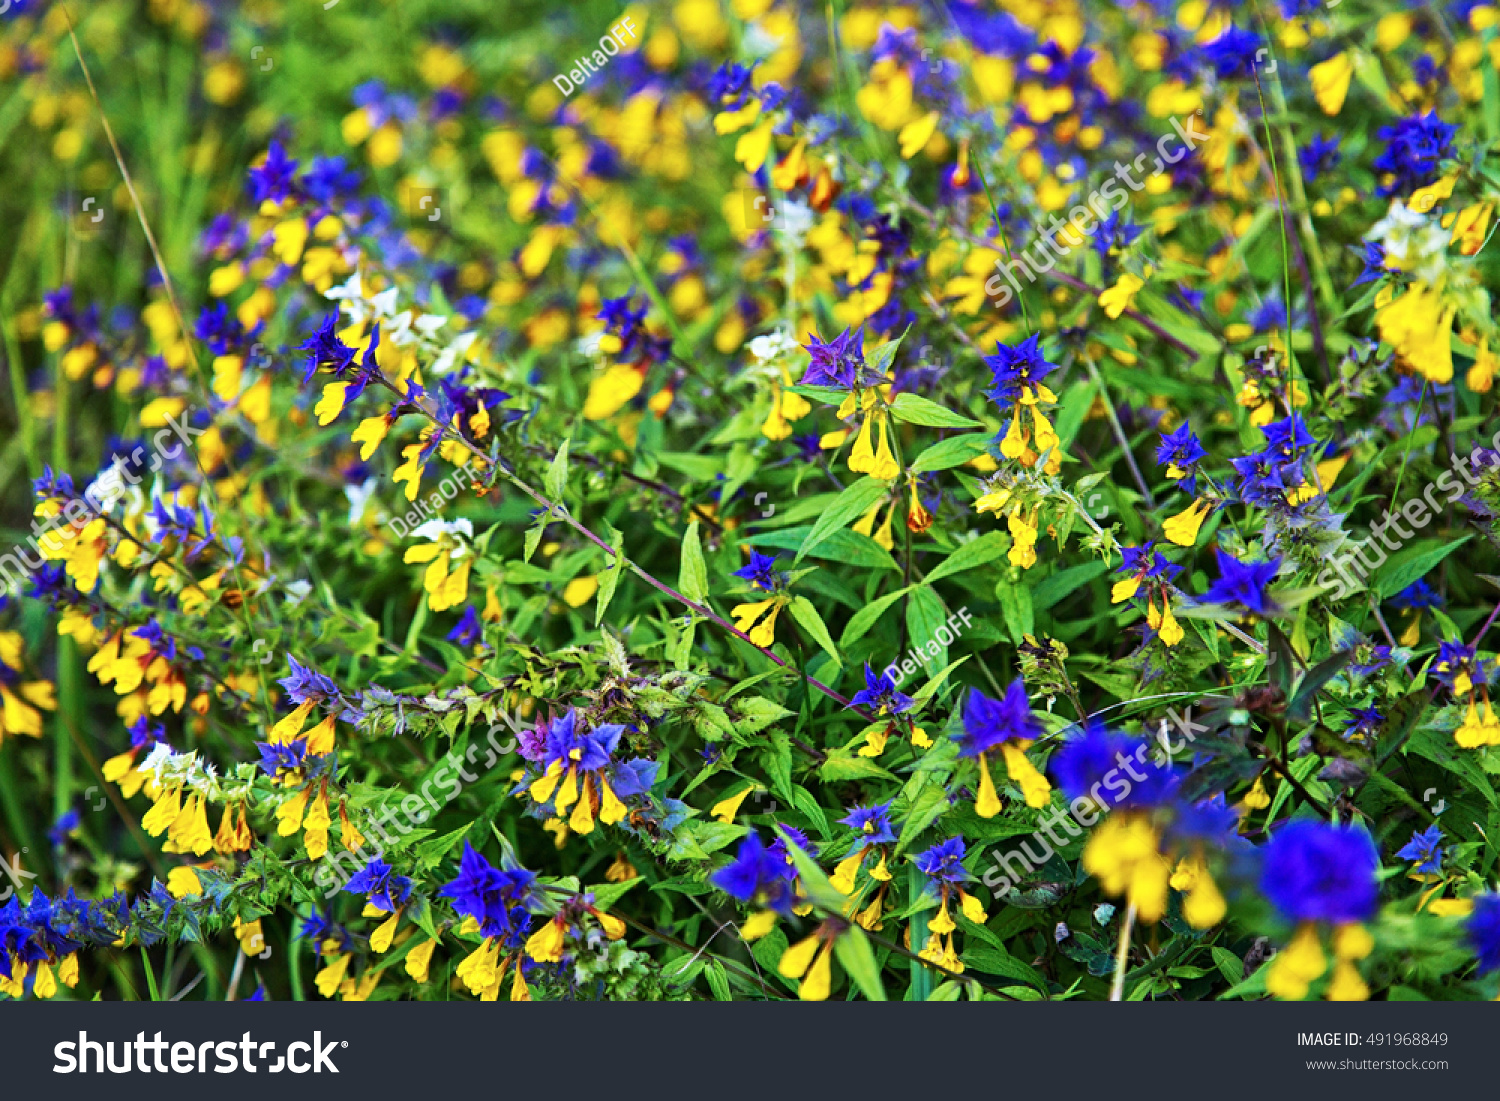 Summer Field With Yellow And Blue Flowers Nature Background Ez Canvas